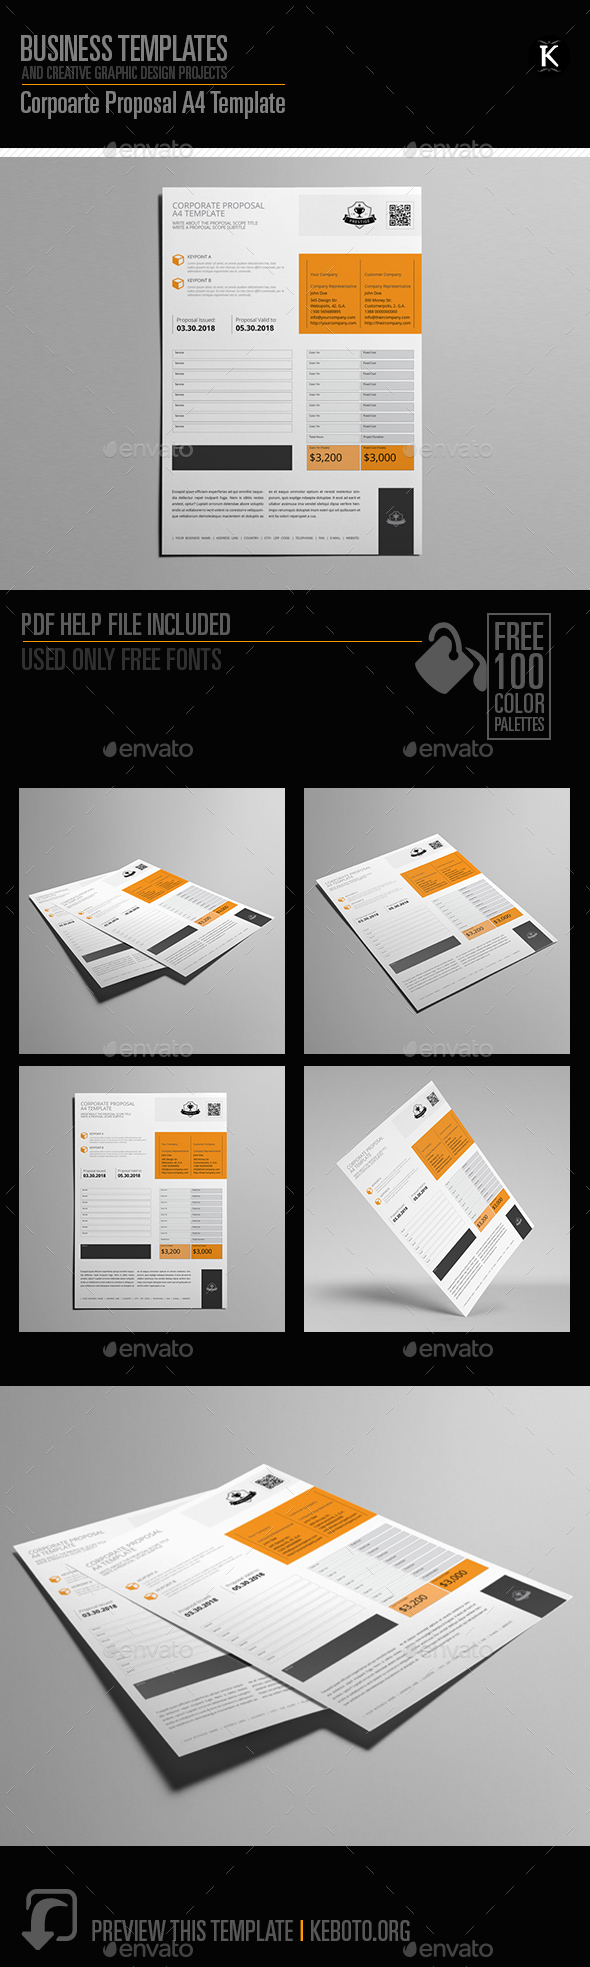 Corporate Proposal A4 Template - Proposals & Invoices Stationery